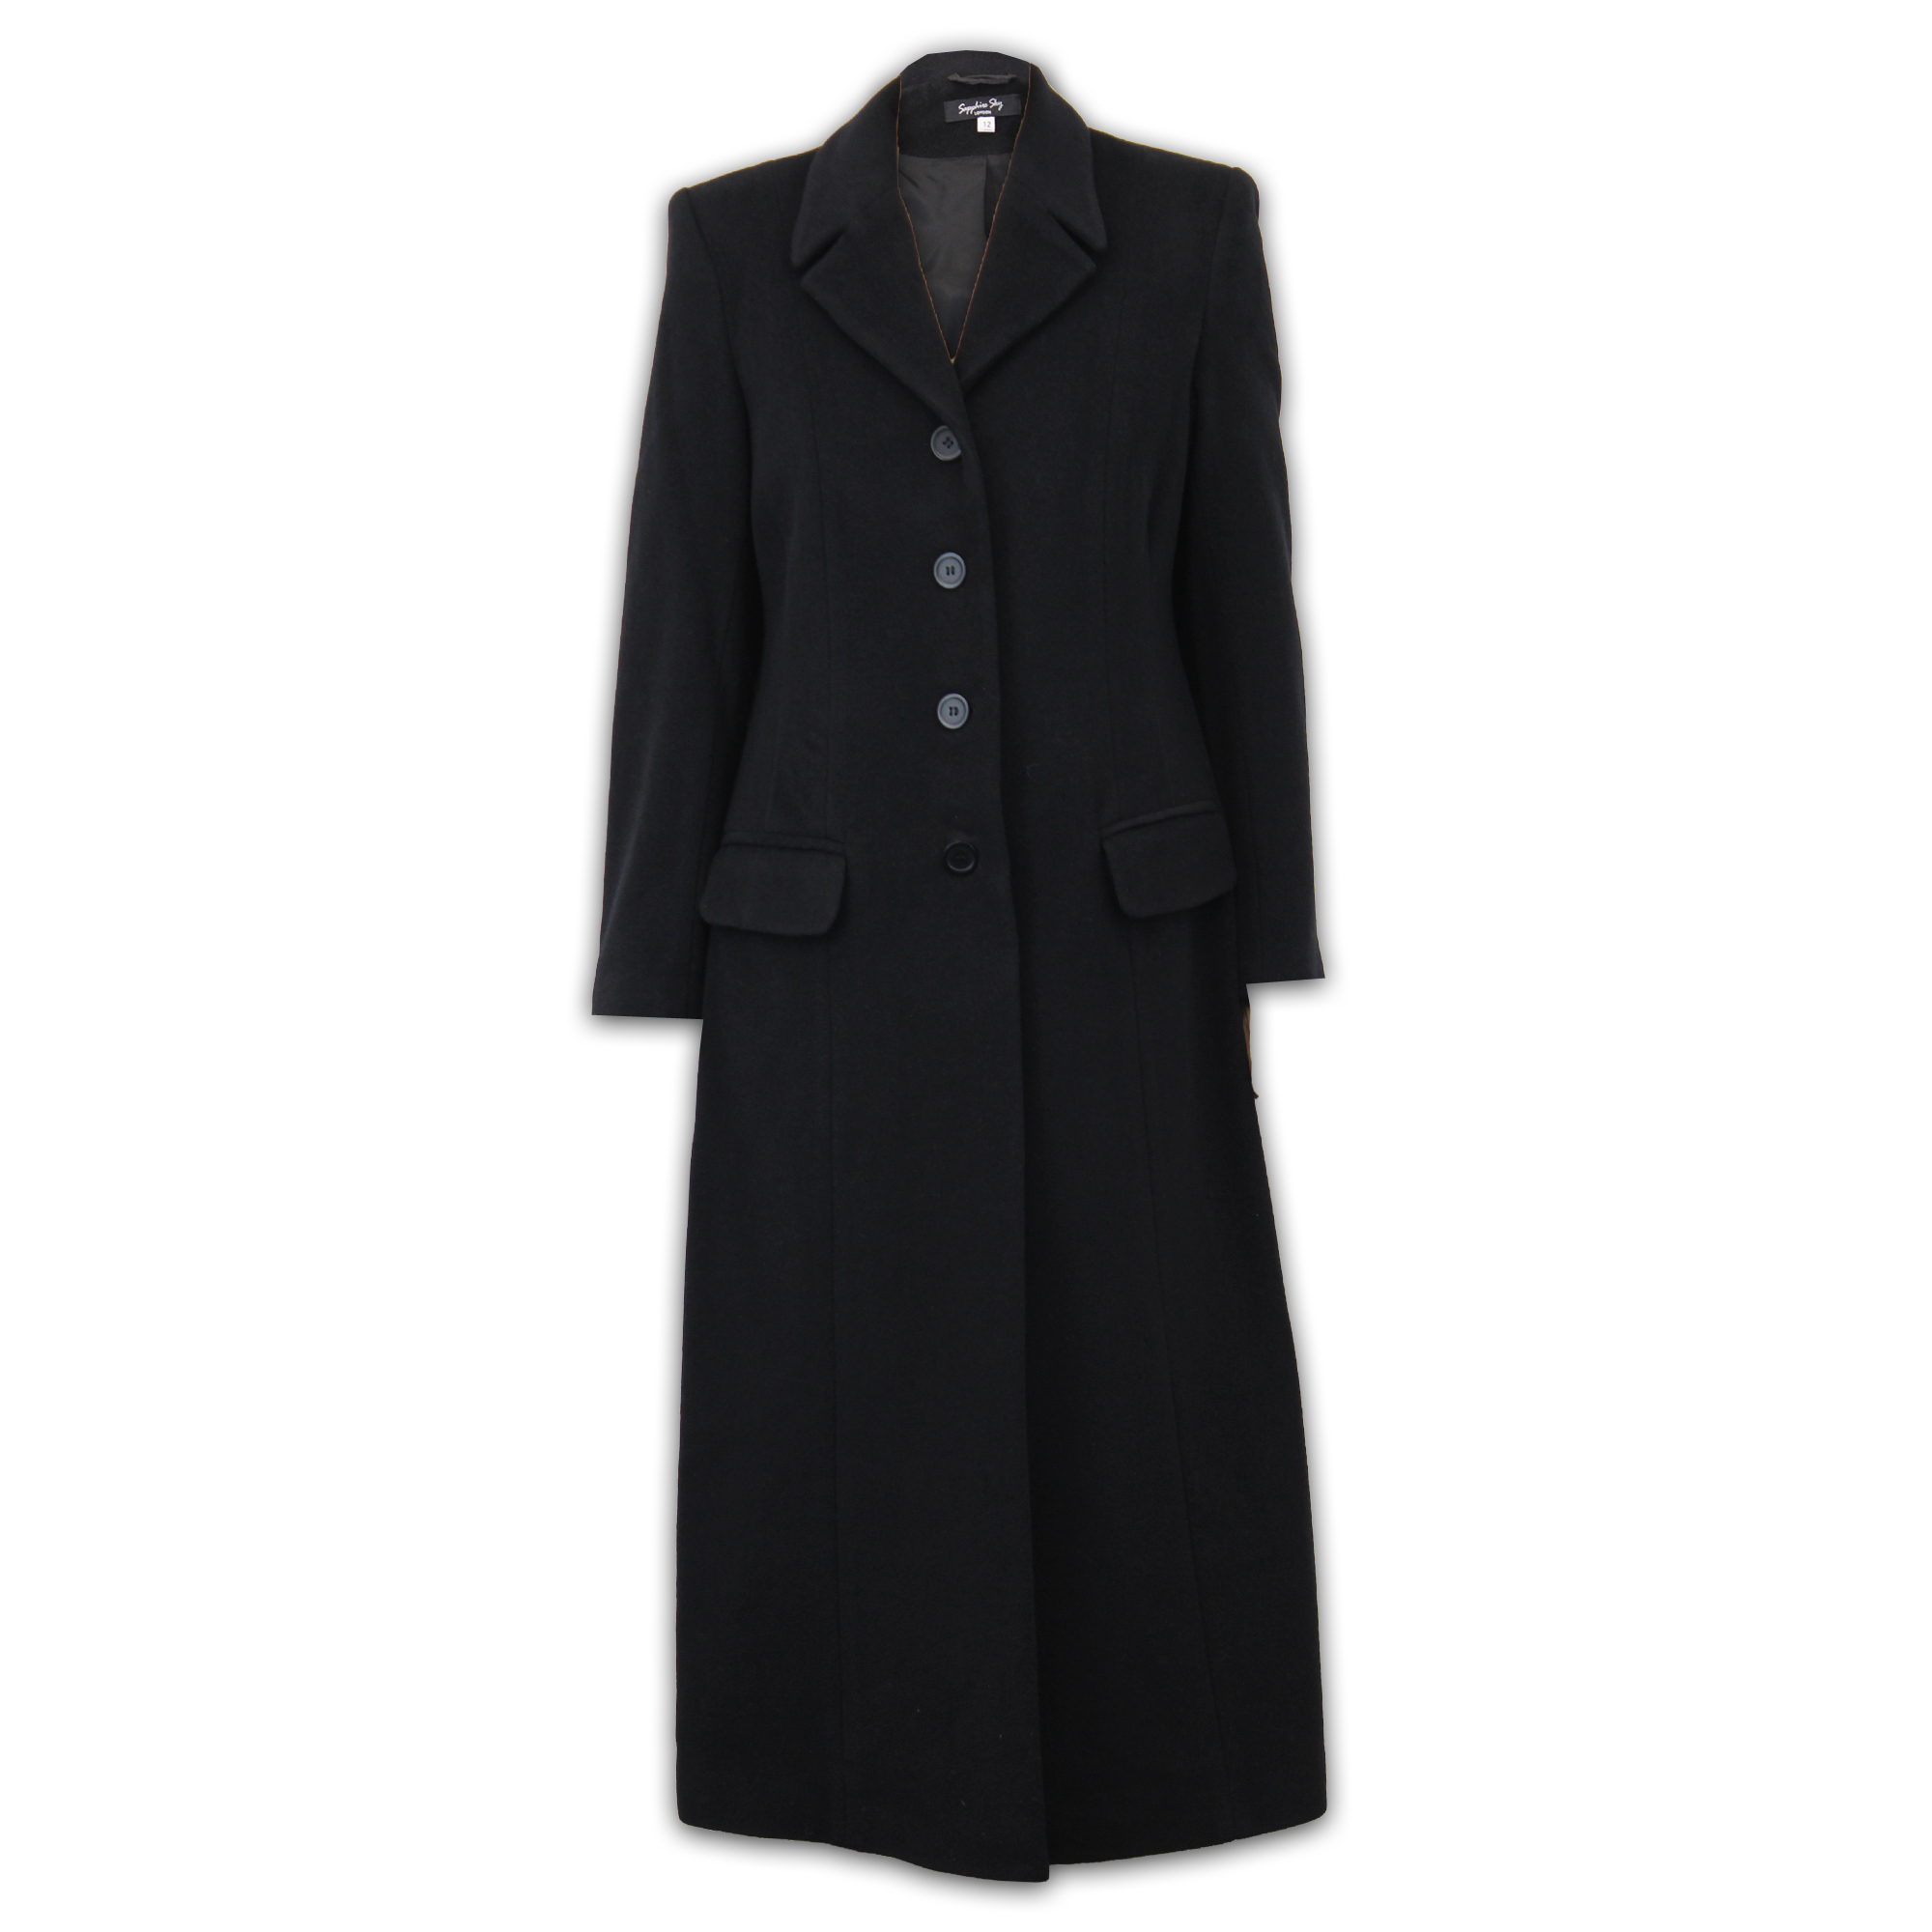 Ladies-Wool-Cashmere-Coat-Women-Jacket-Outerwear-Trench-Overcoat-Winter-Lined thumbnail 4